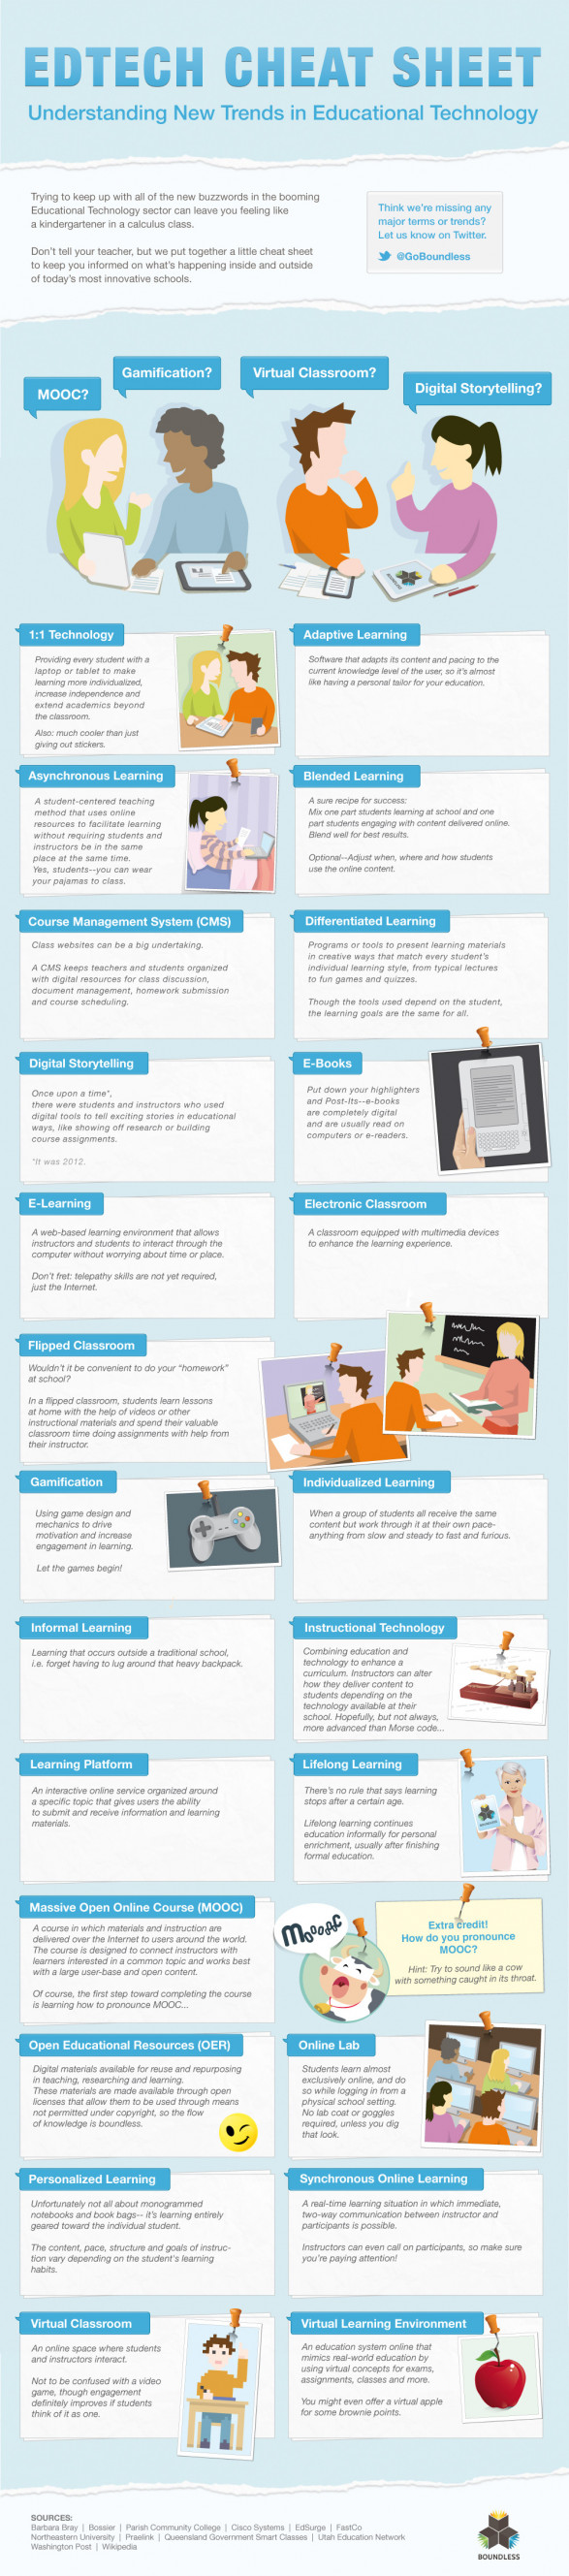 EdTech Cheat Sheet Infographic